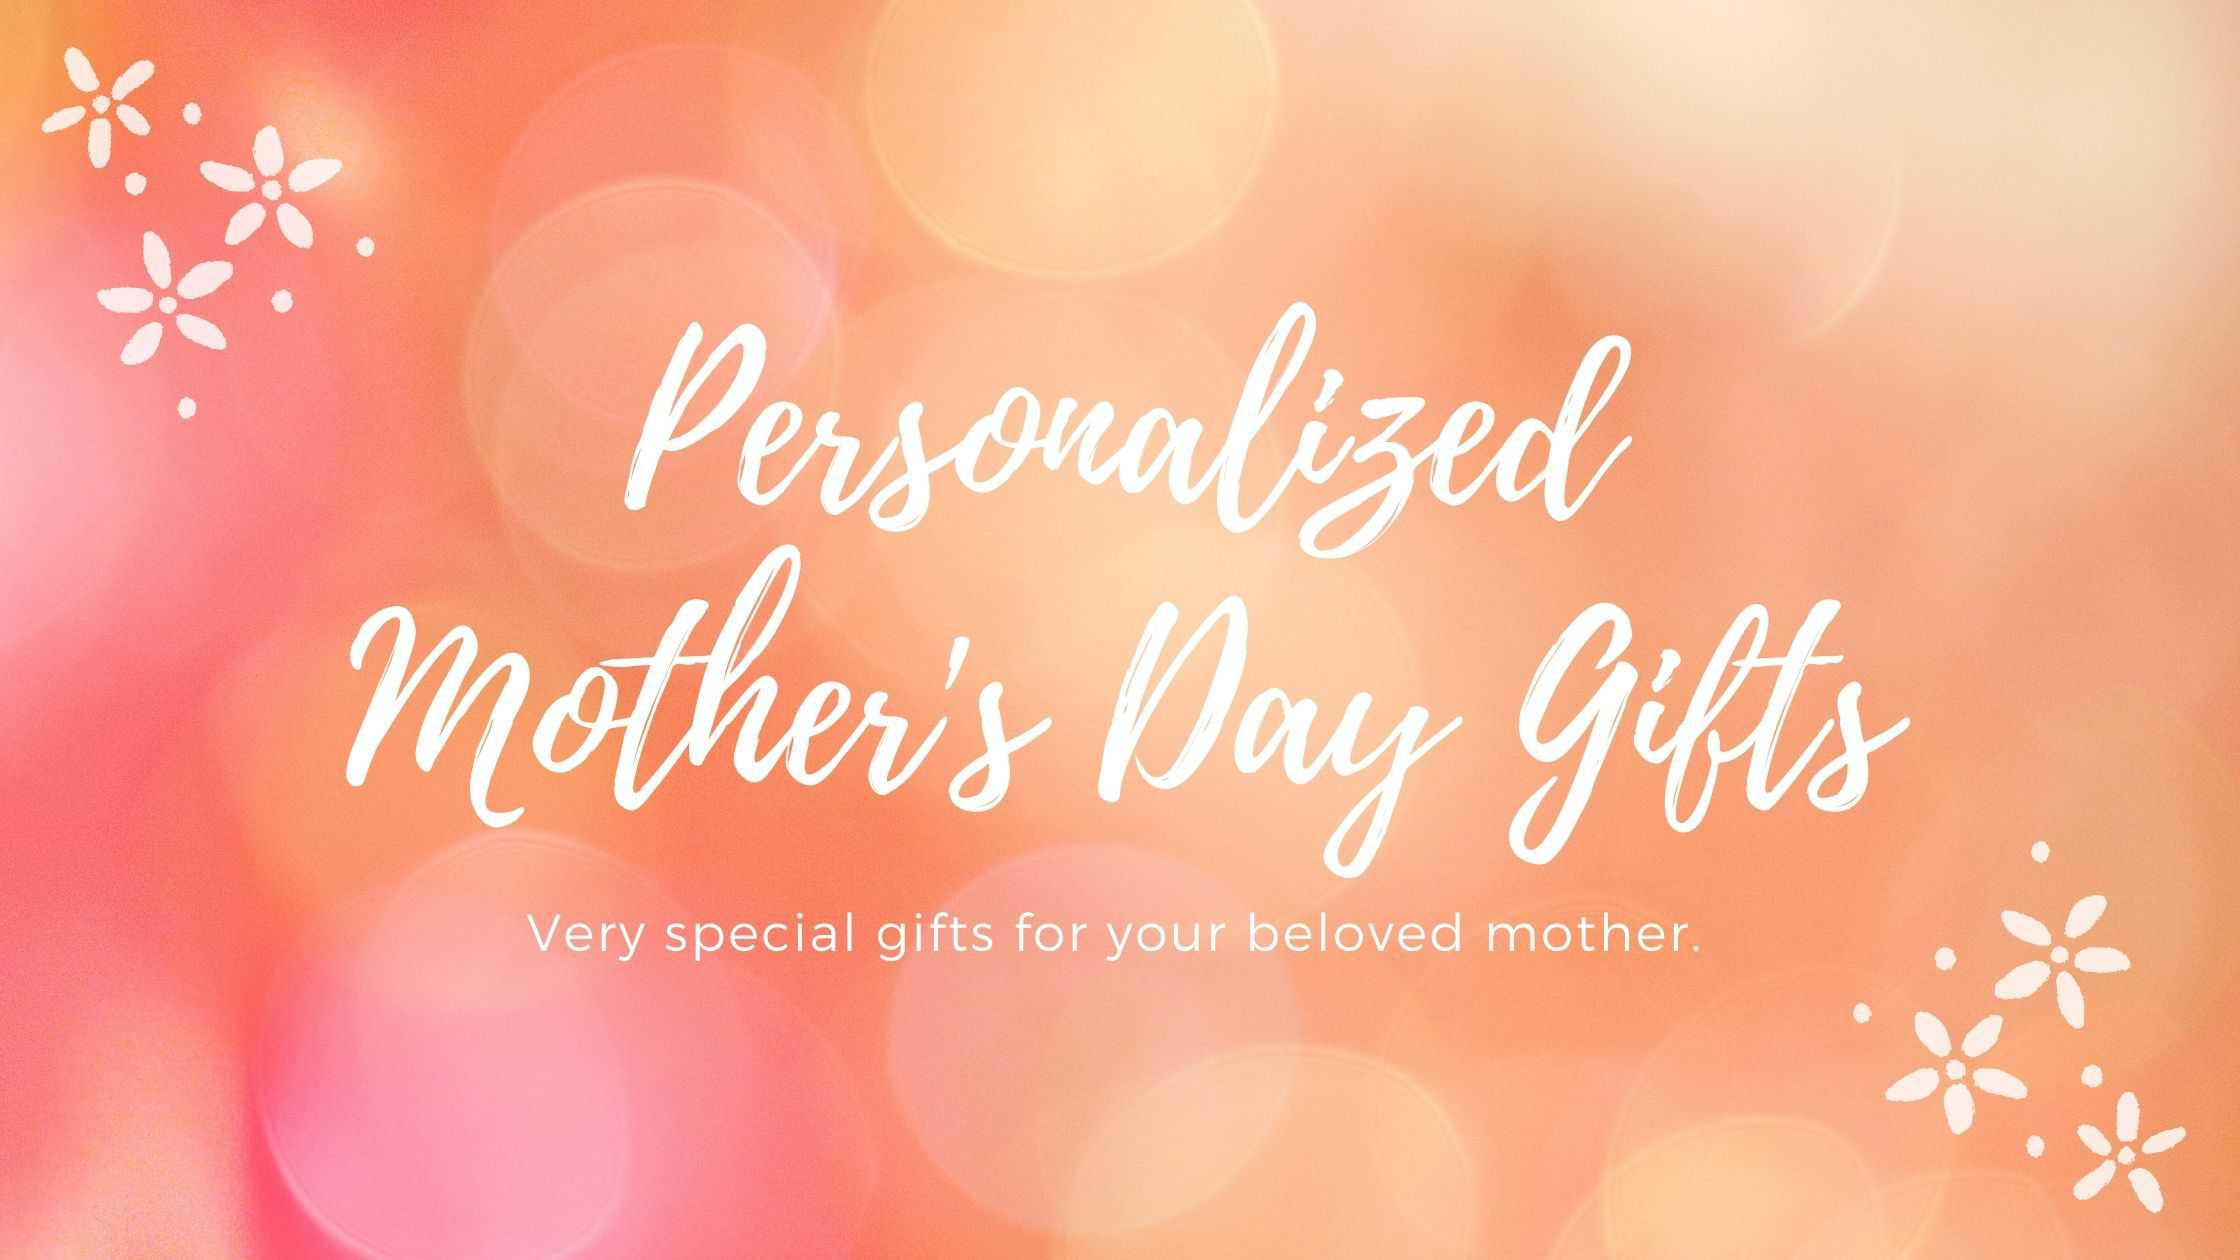 20+ Personalized Mother's Day Gift Ideas for The Best Moms (2021)